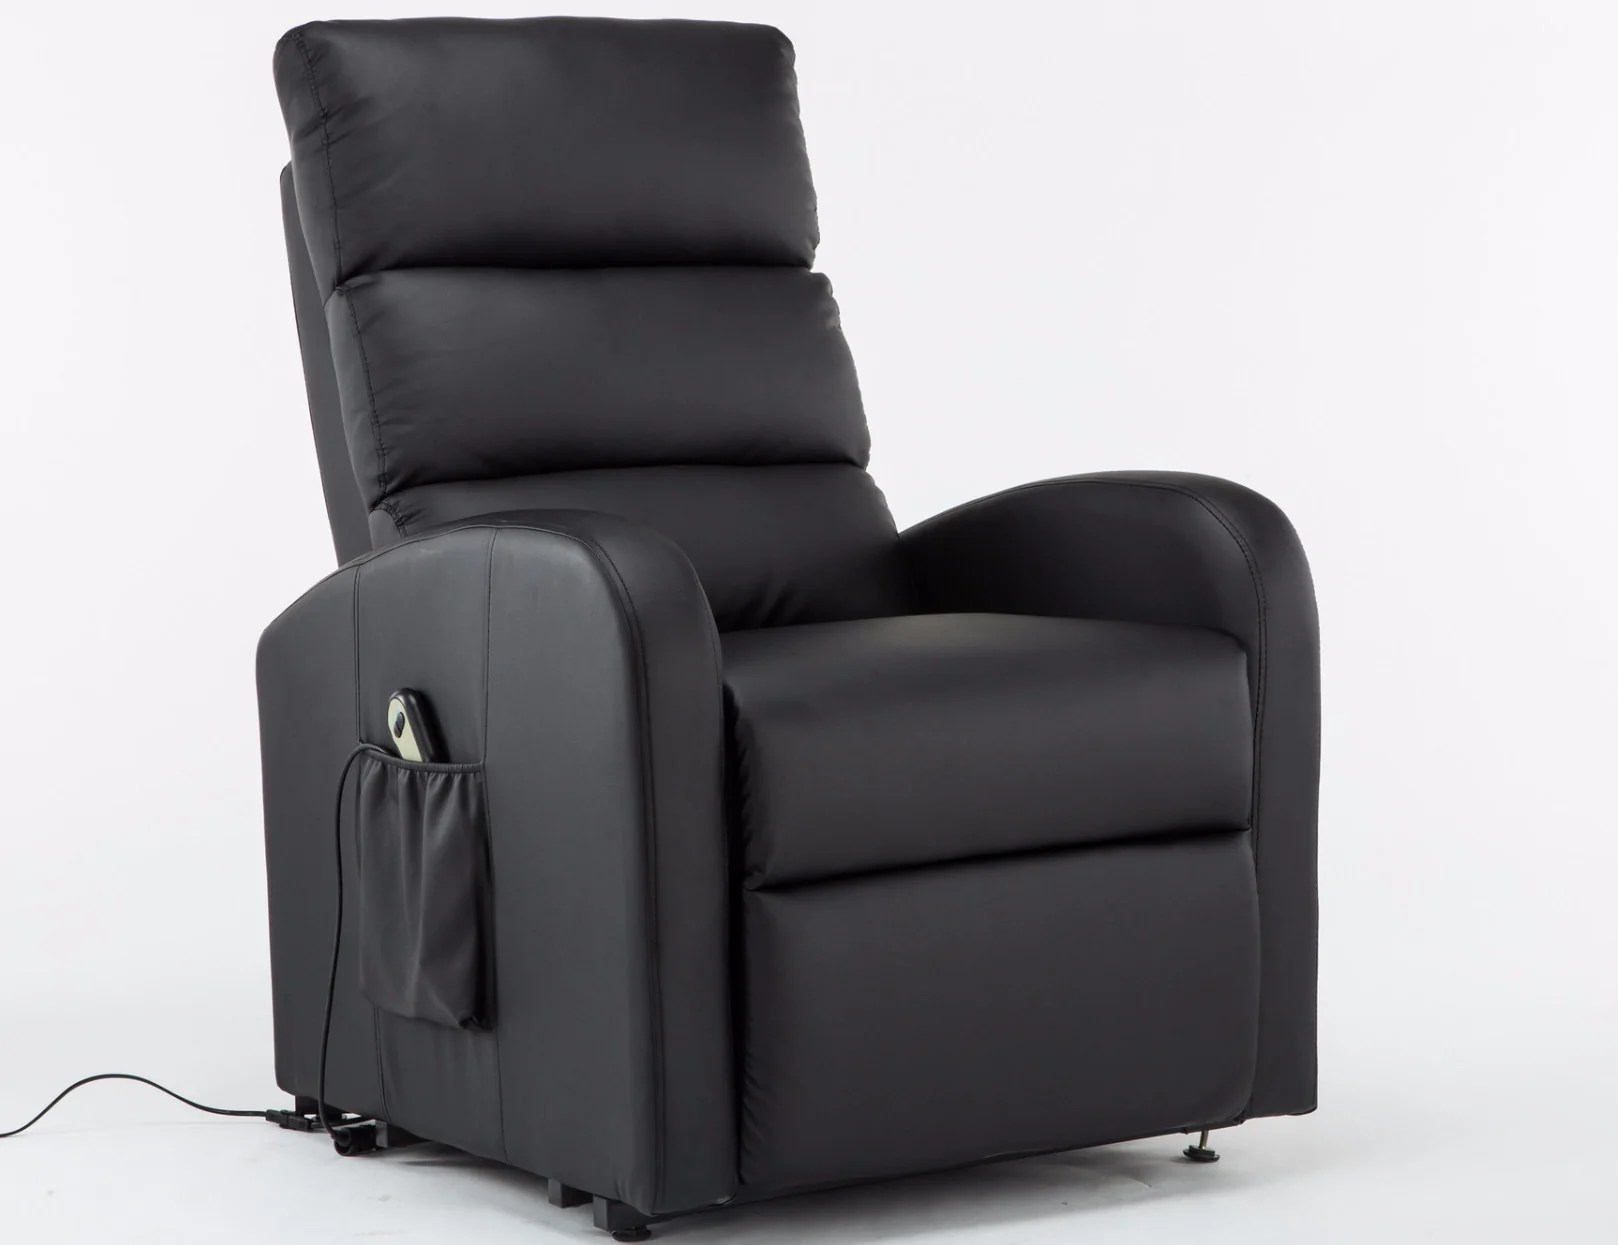 Leather Lift Chairs Recliners Reclining Loveseats Recliner Chairs Sofamania